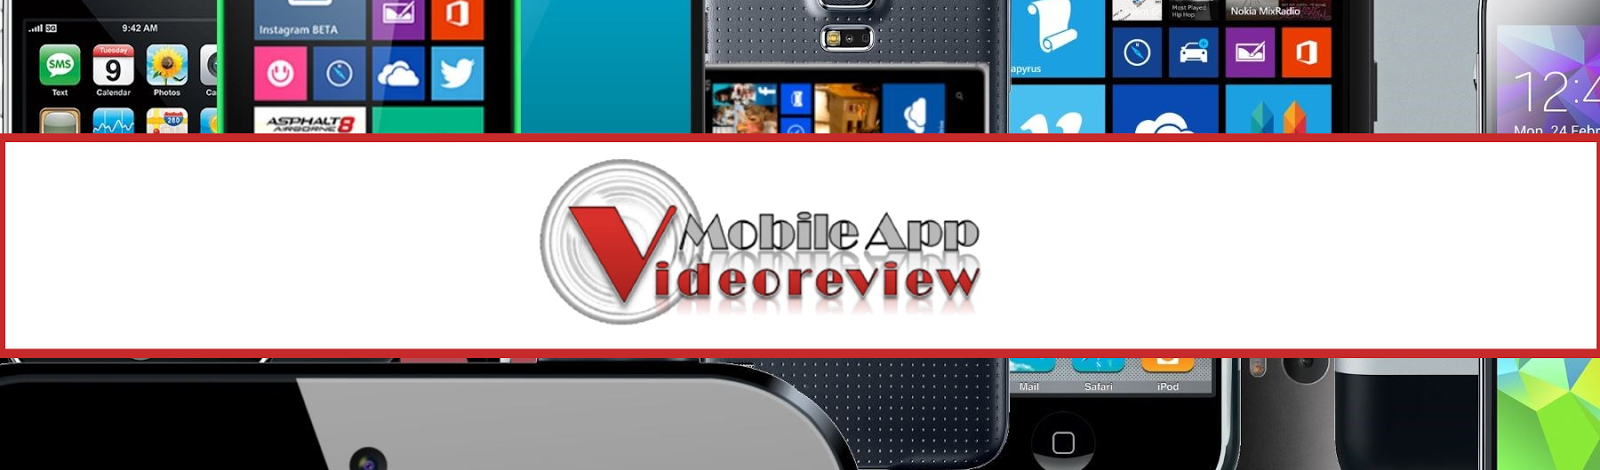 Mobile App Videoreview